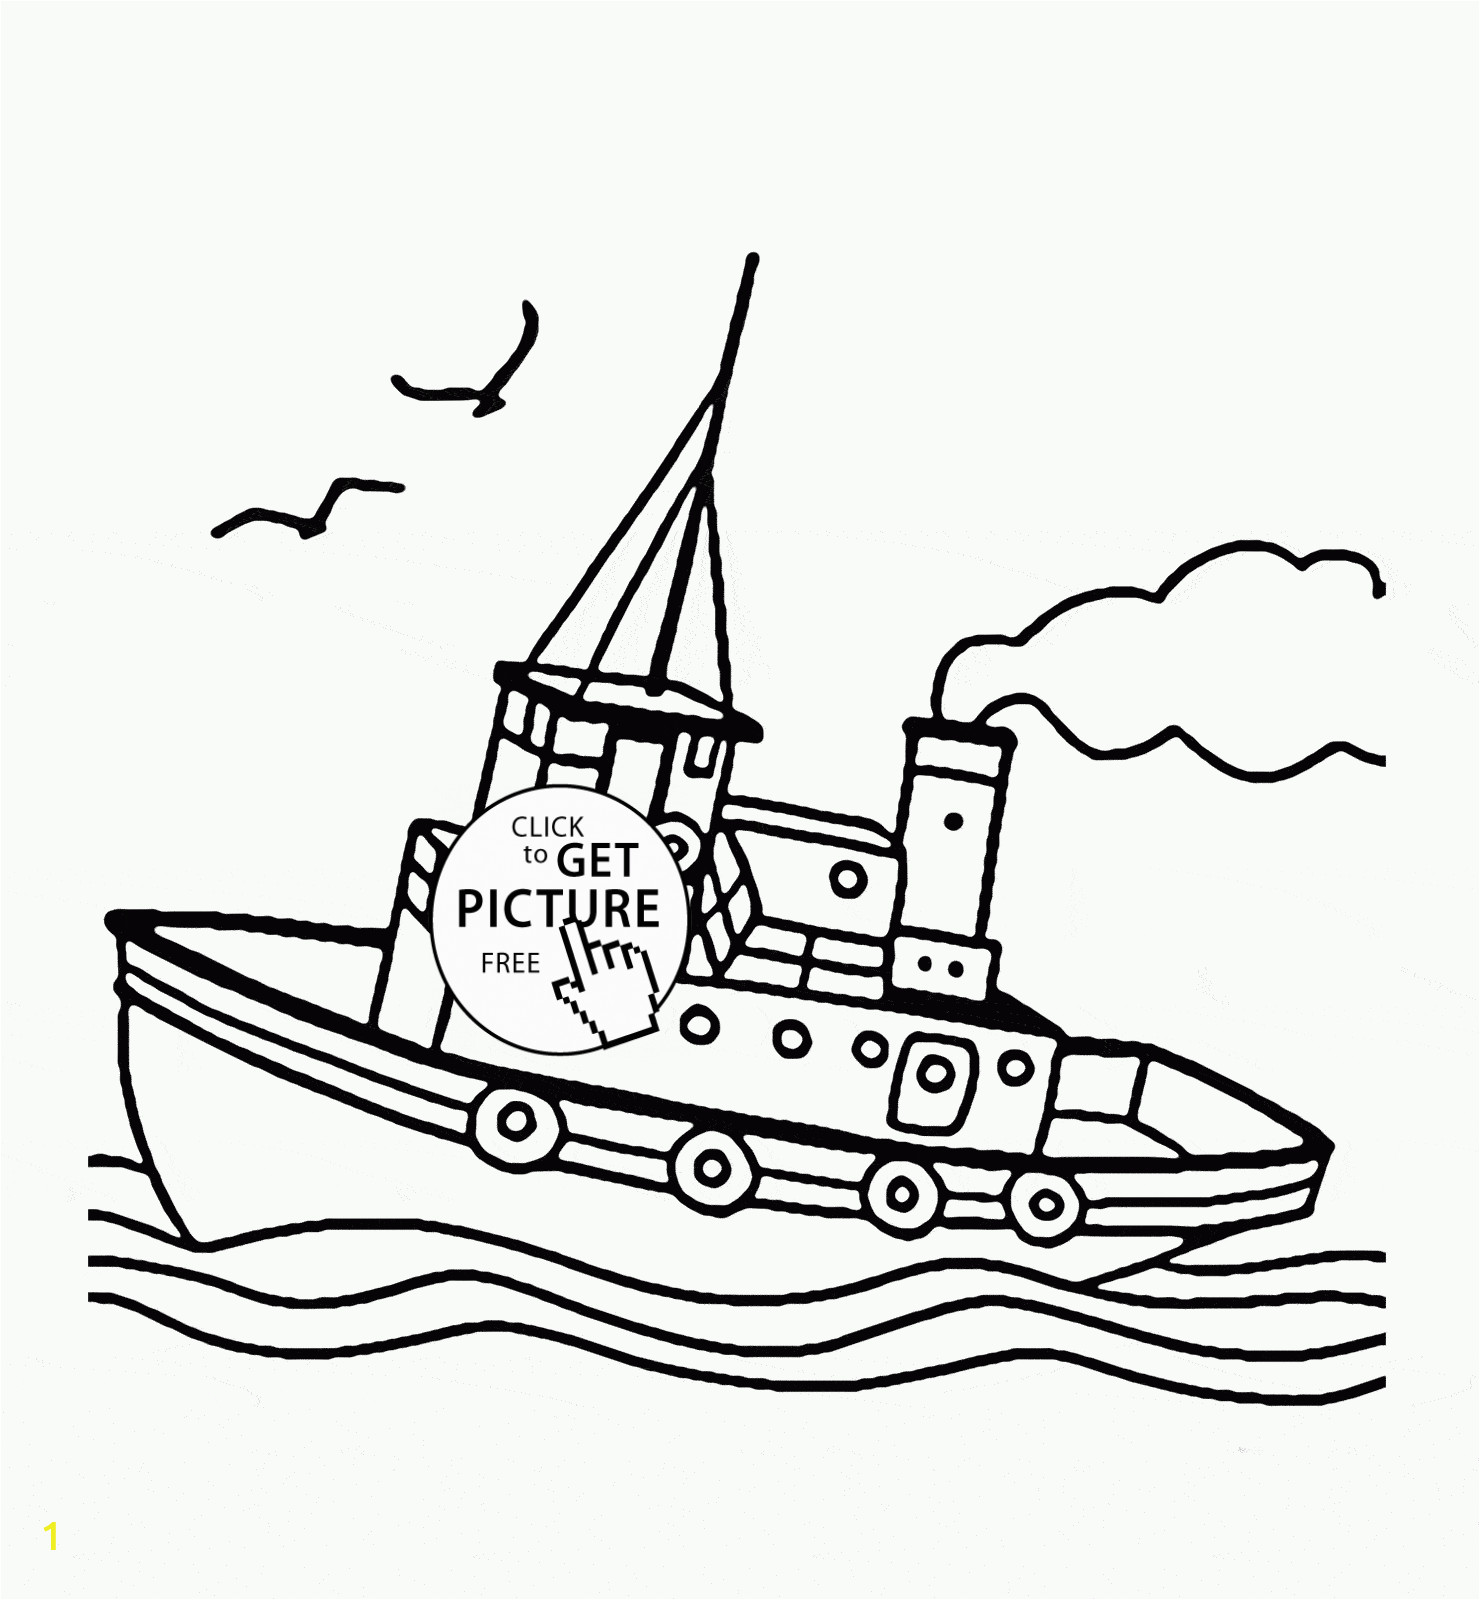 in tugboat coloring page for kids transportation pages